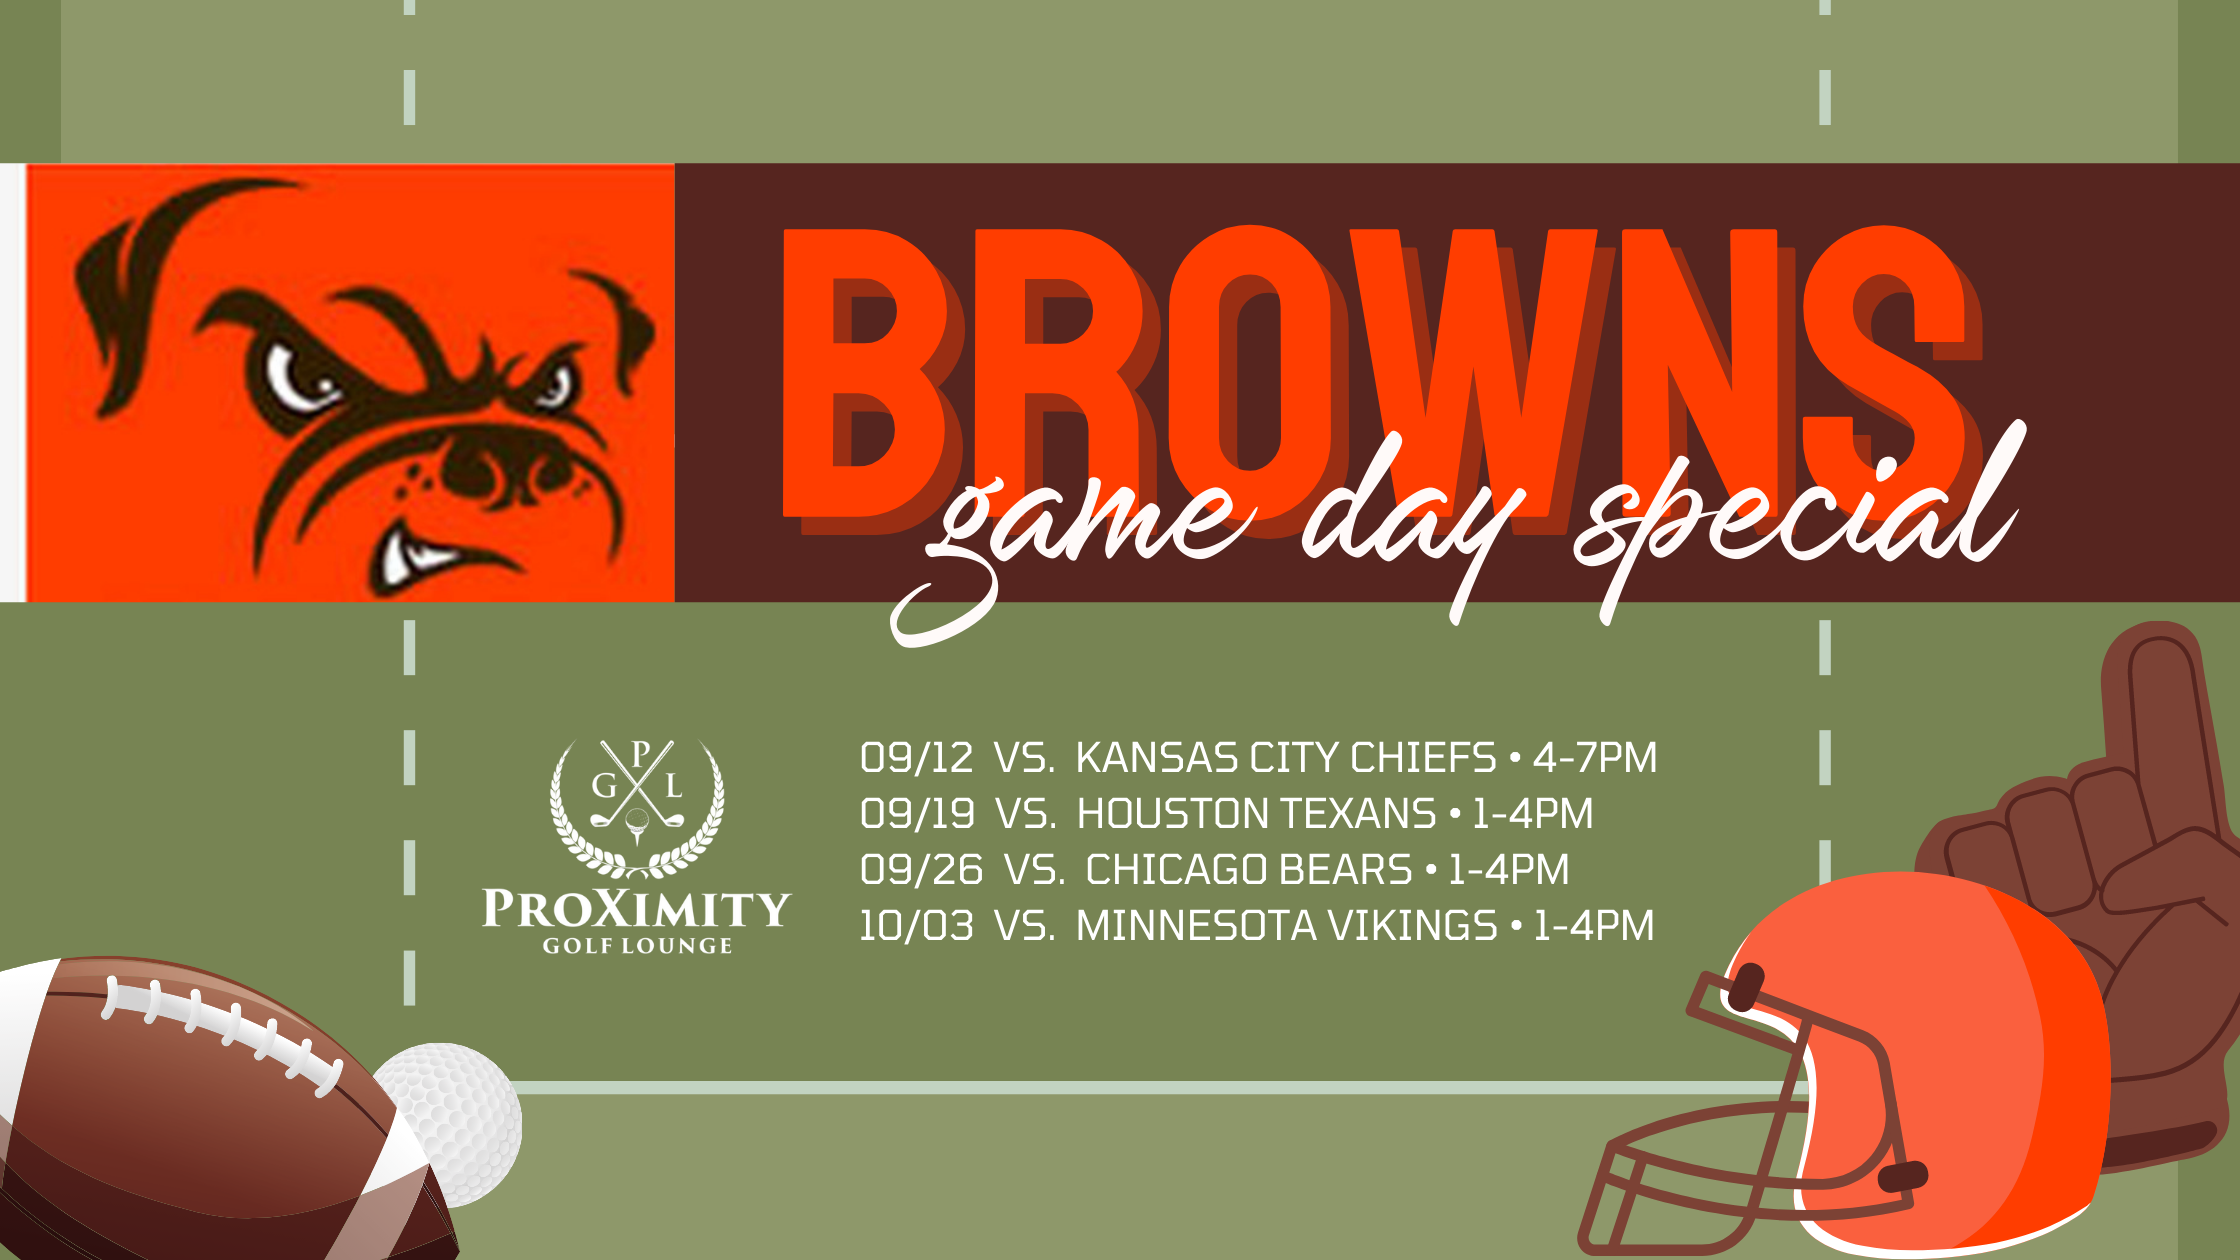 Browns Game Day Packages